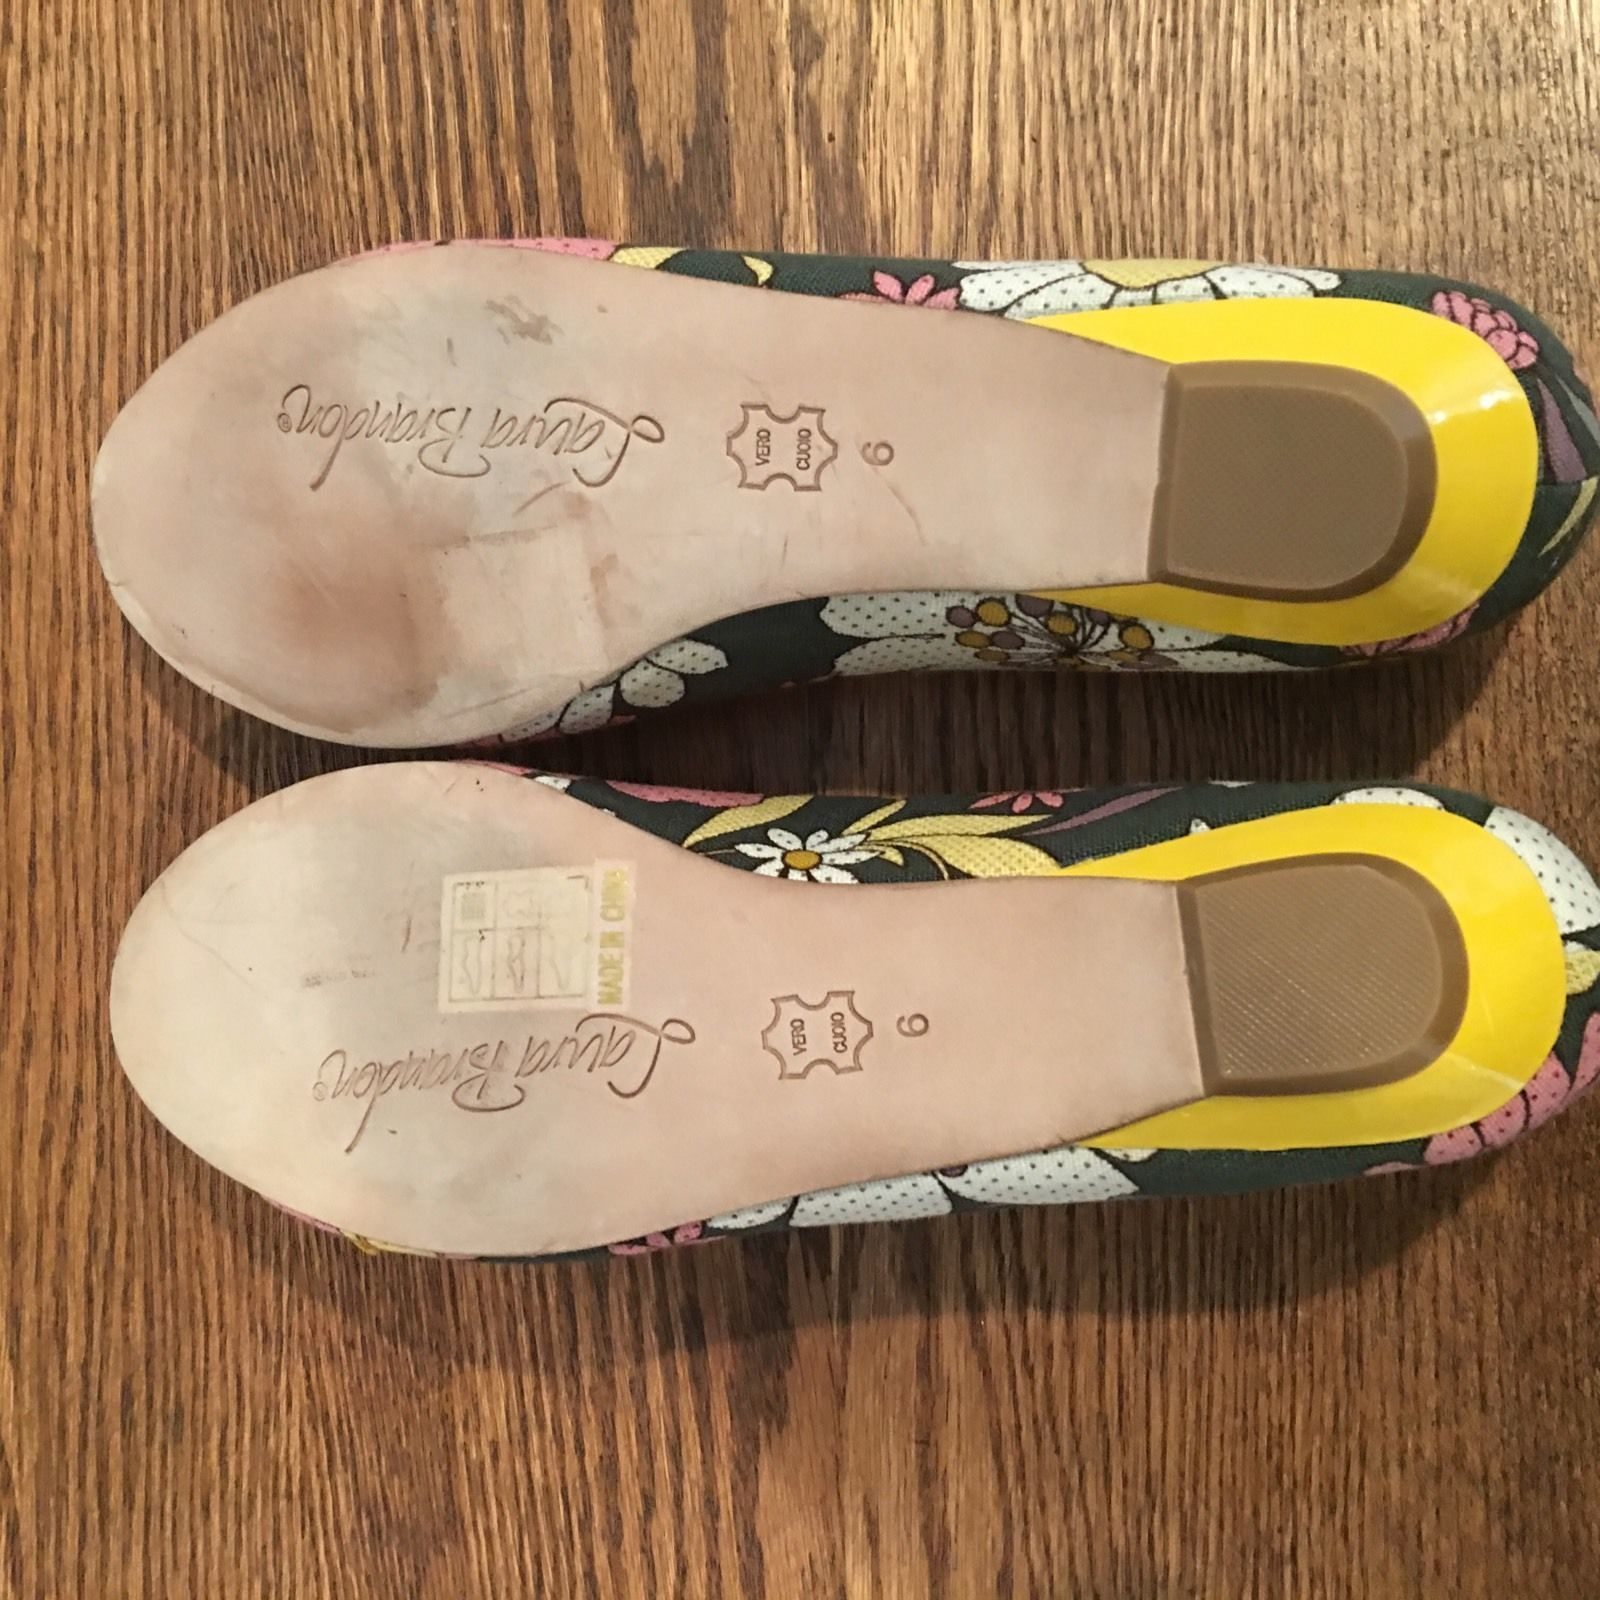 Anthropologie Shoes Laura Brandon Daisy Ballerinas Sz 6 Canvas Flats Floral EUC